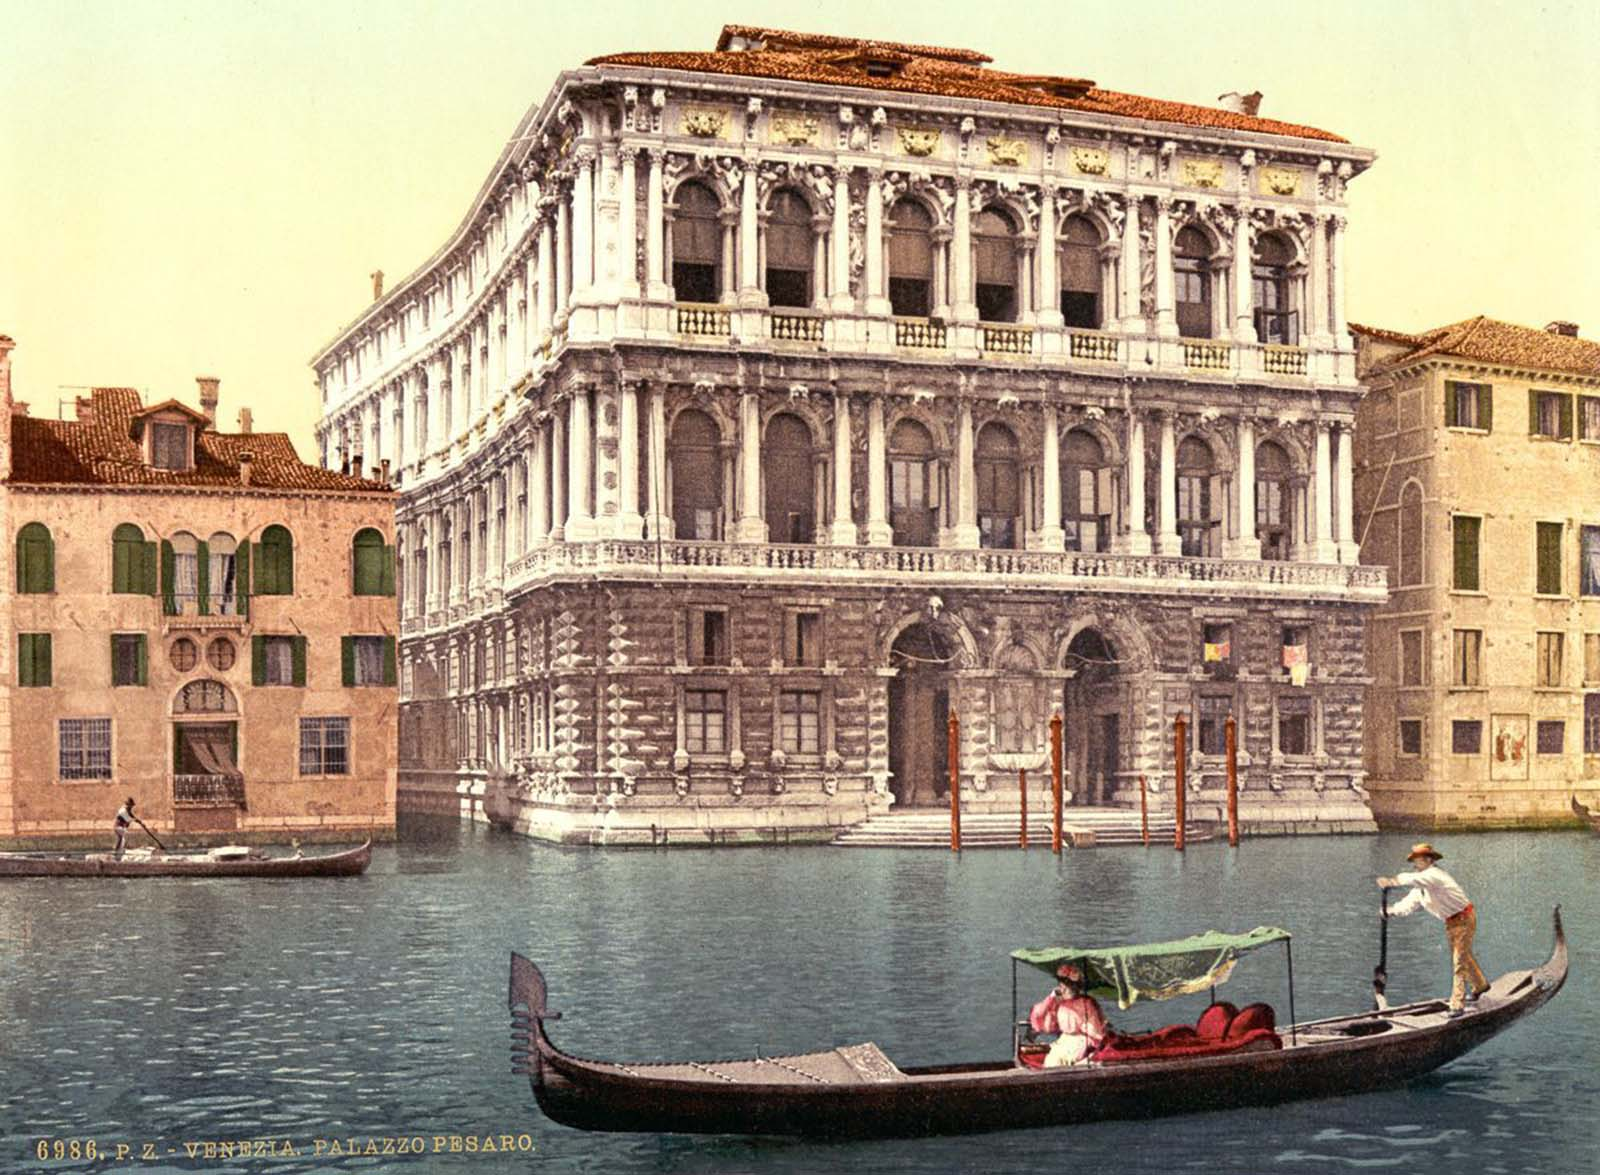 venice-in-beautiful-old-color-images-1890_14.jpg